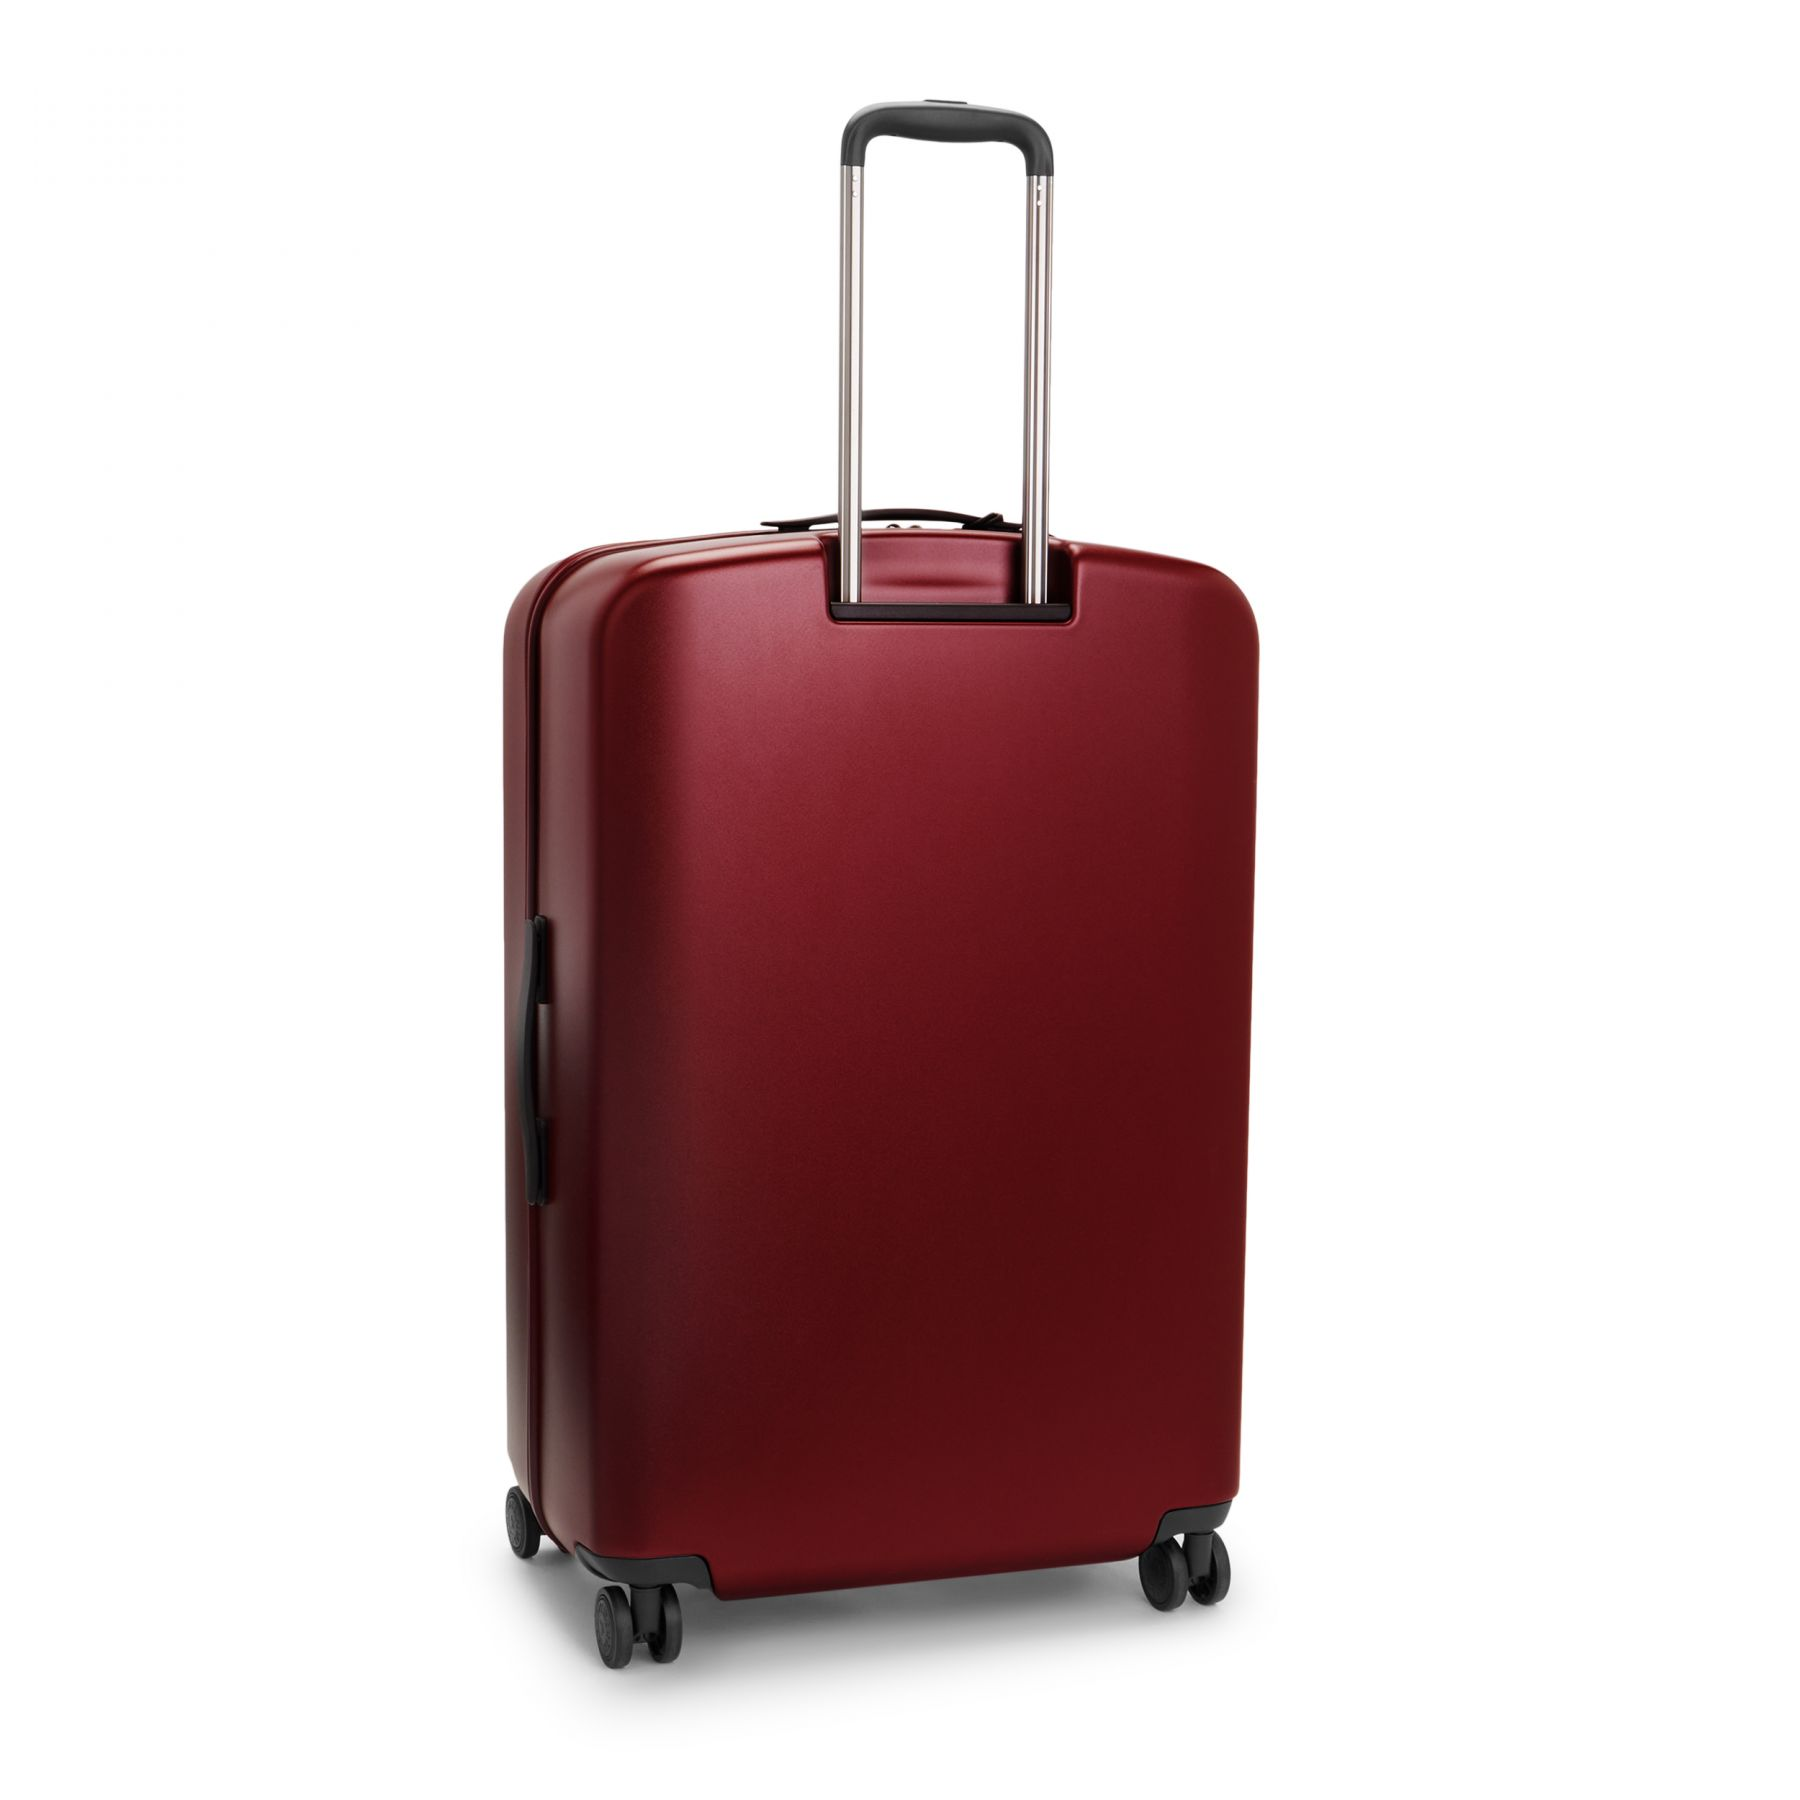 CURIOSITY L LUGGAGE by Kipling - Back view